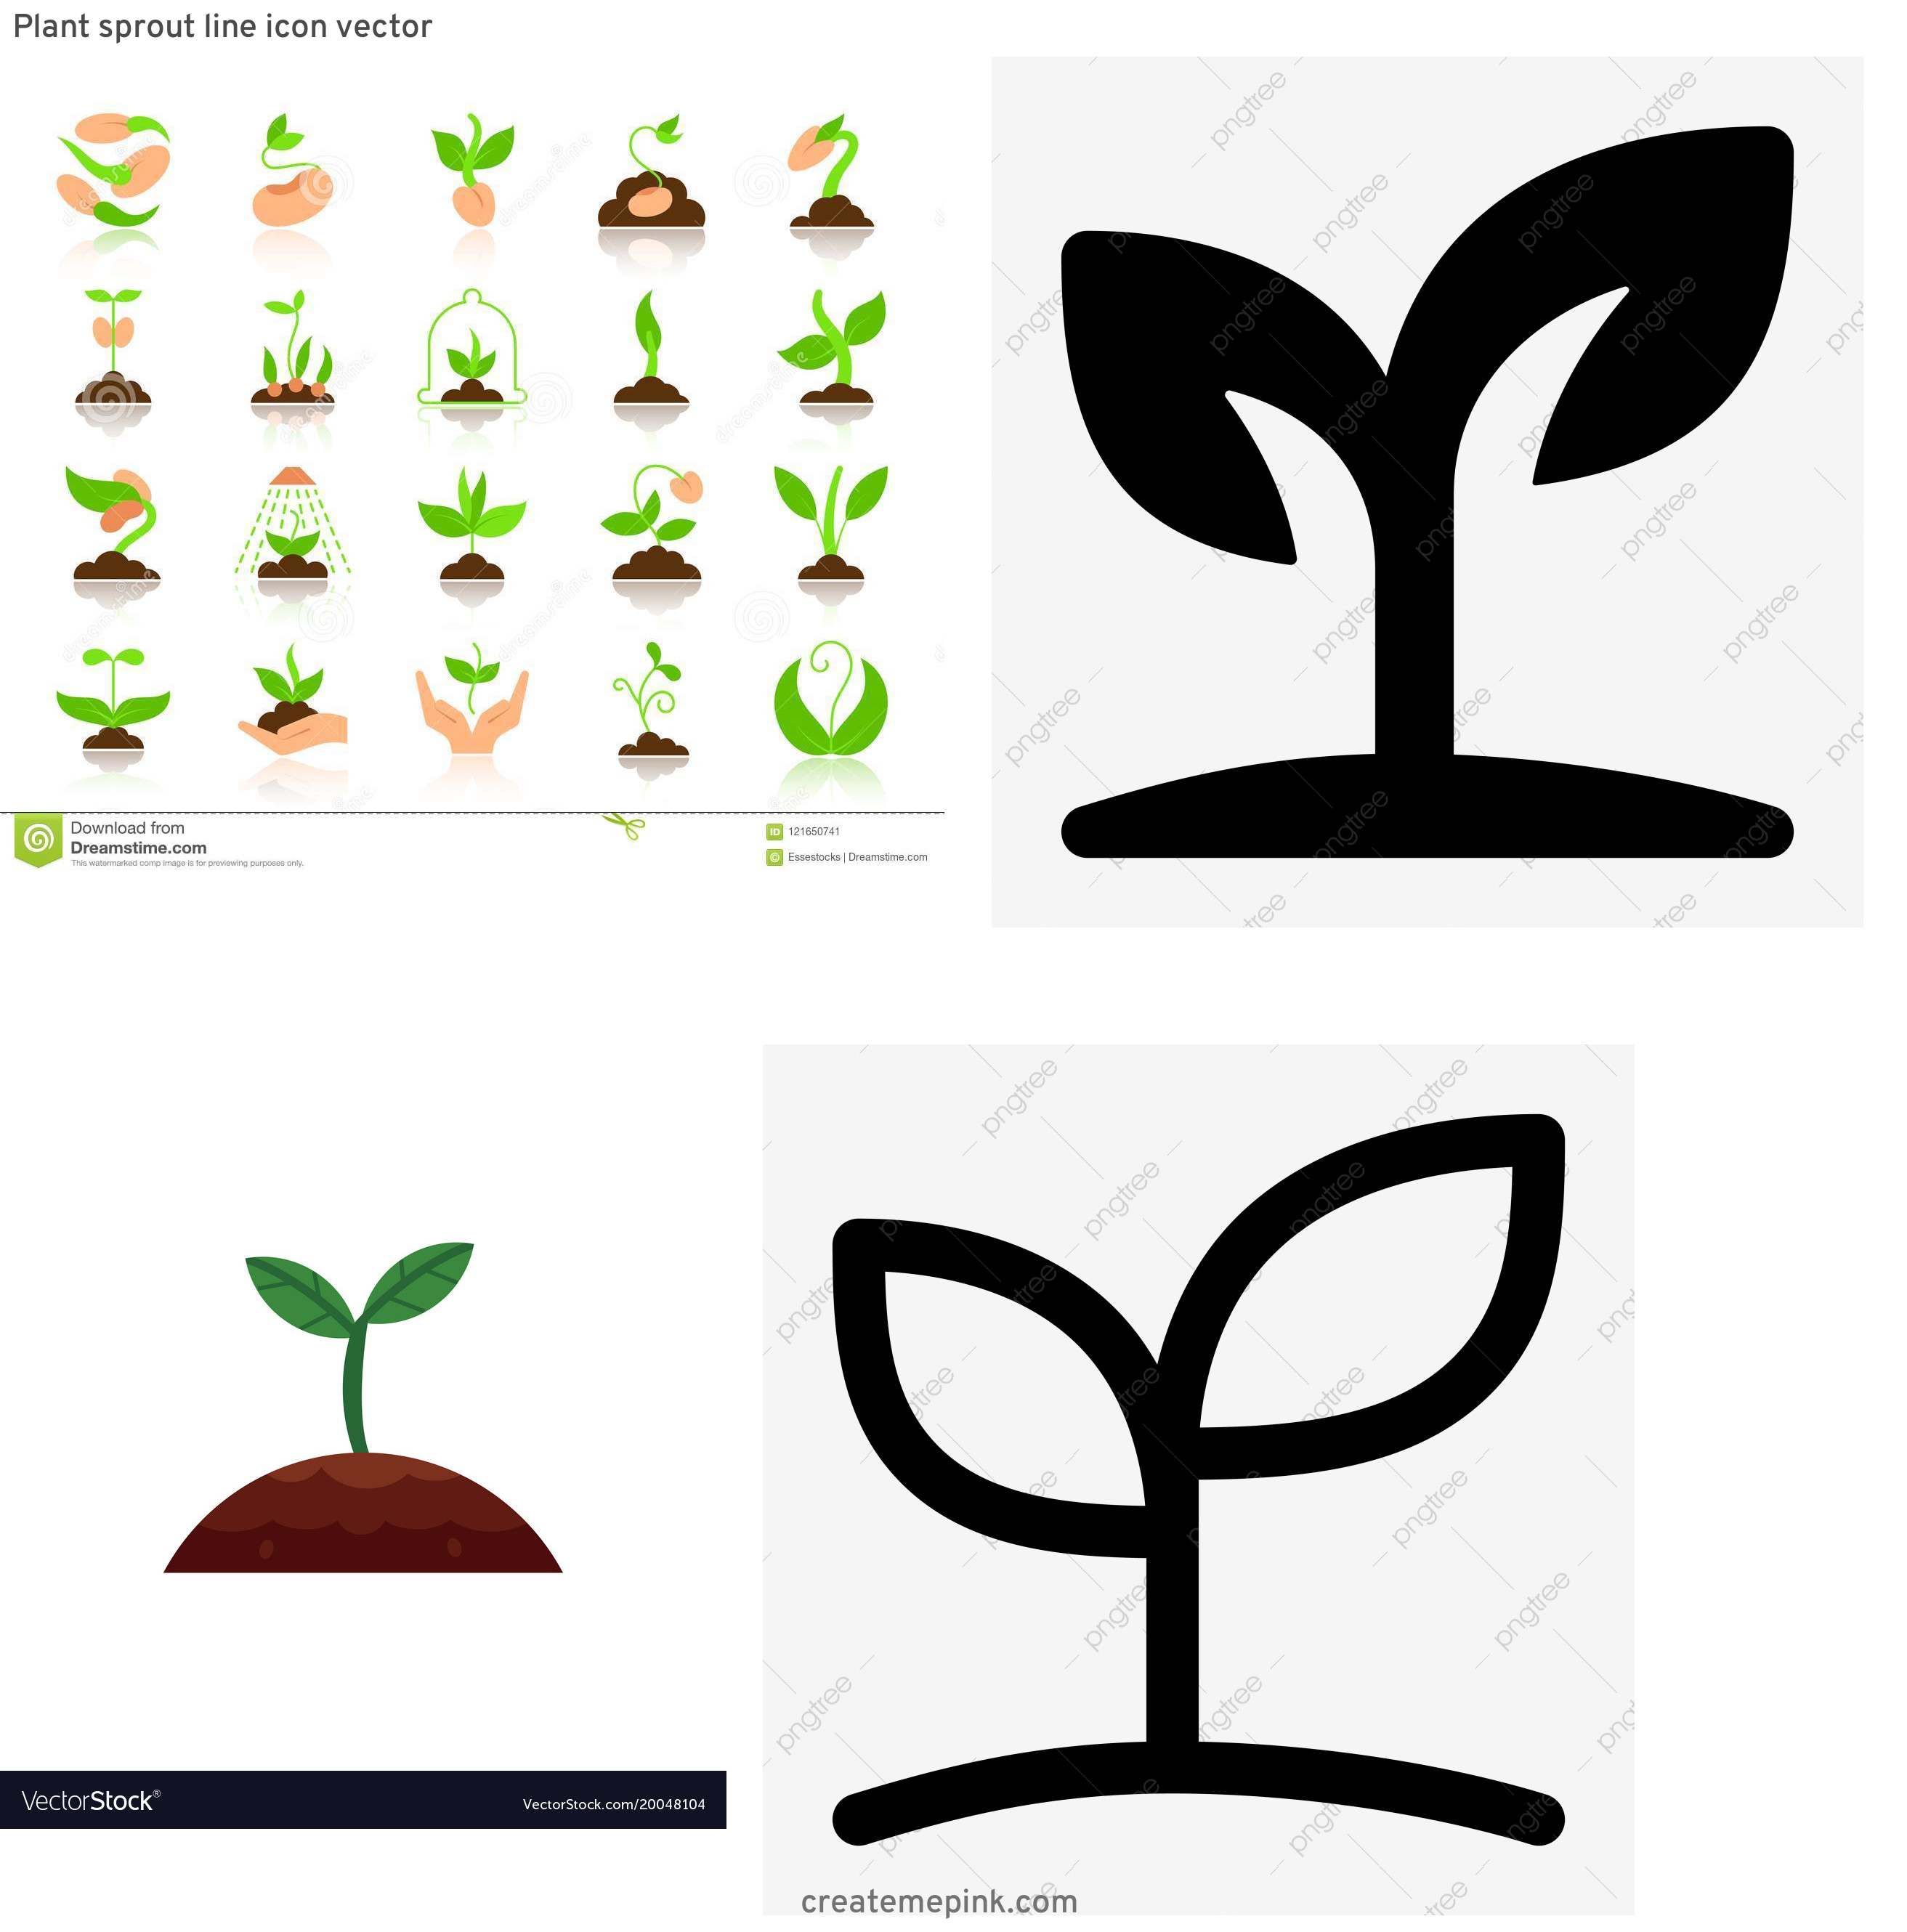 Sprout Icon Vector: Plant Sprout Line Icon Vector